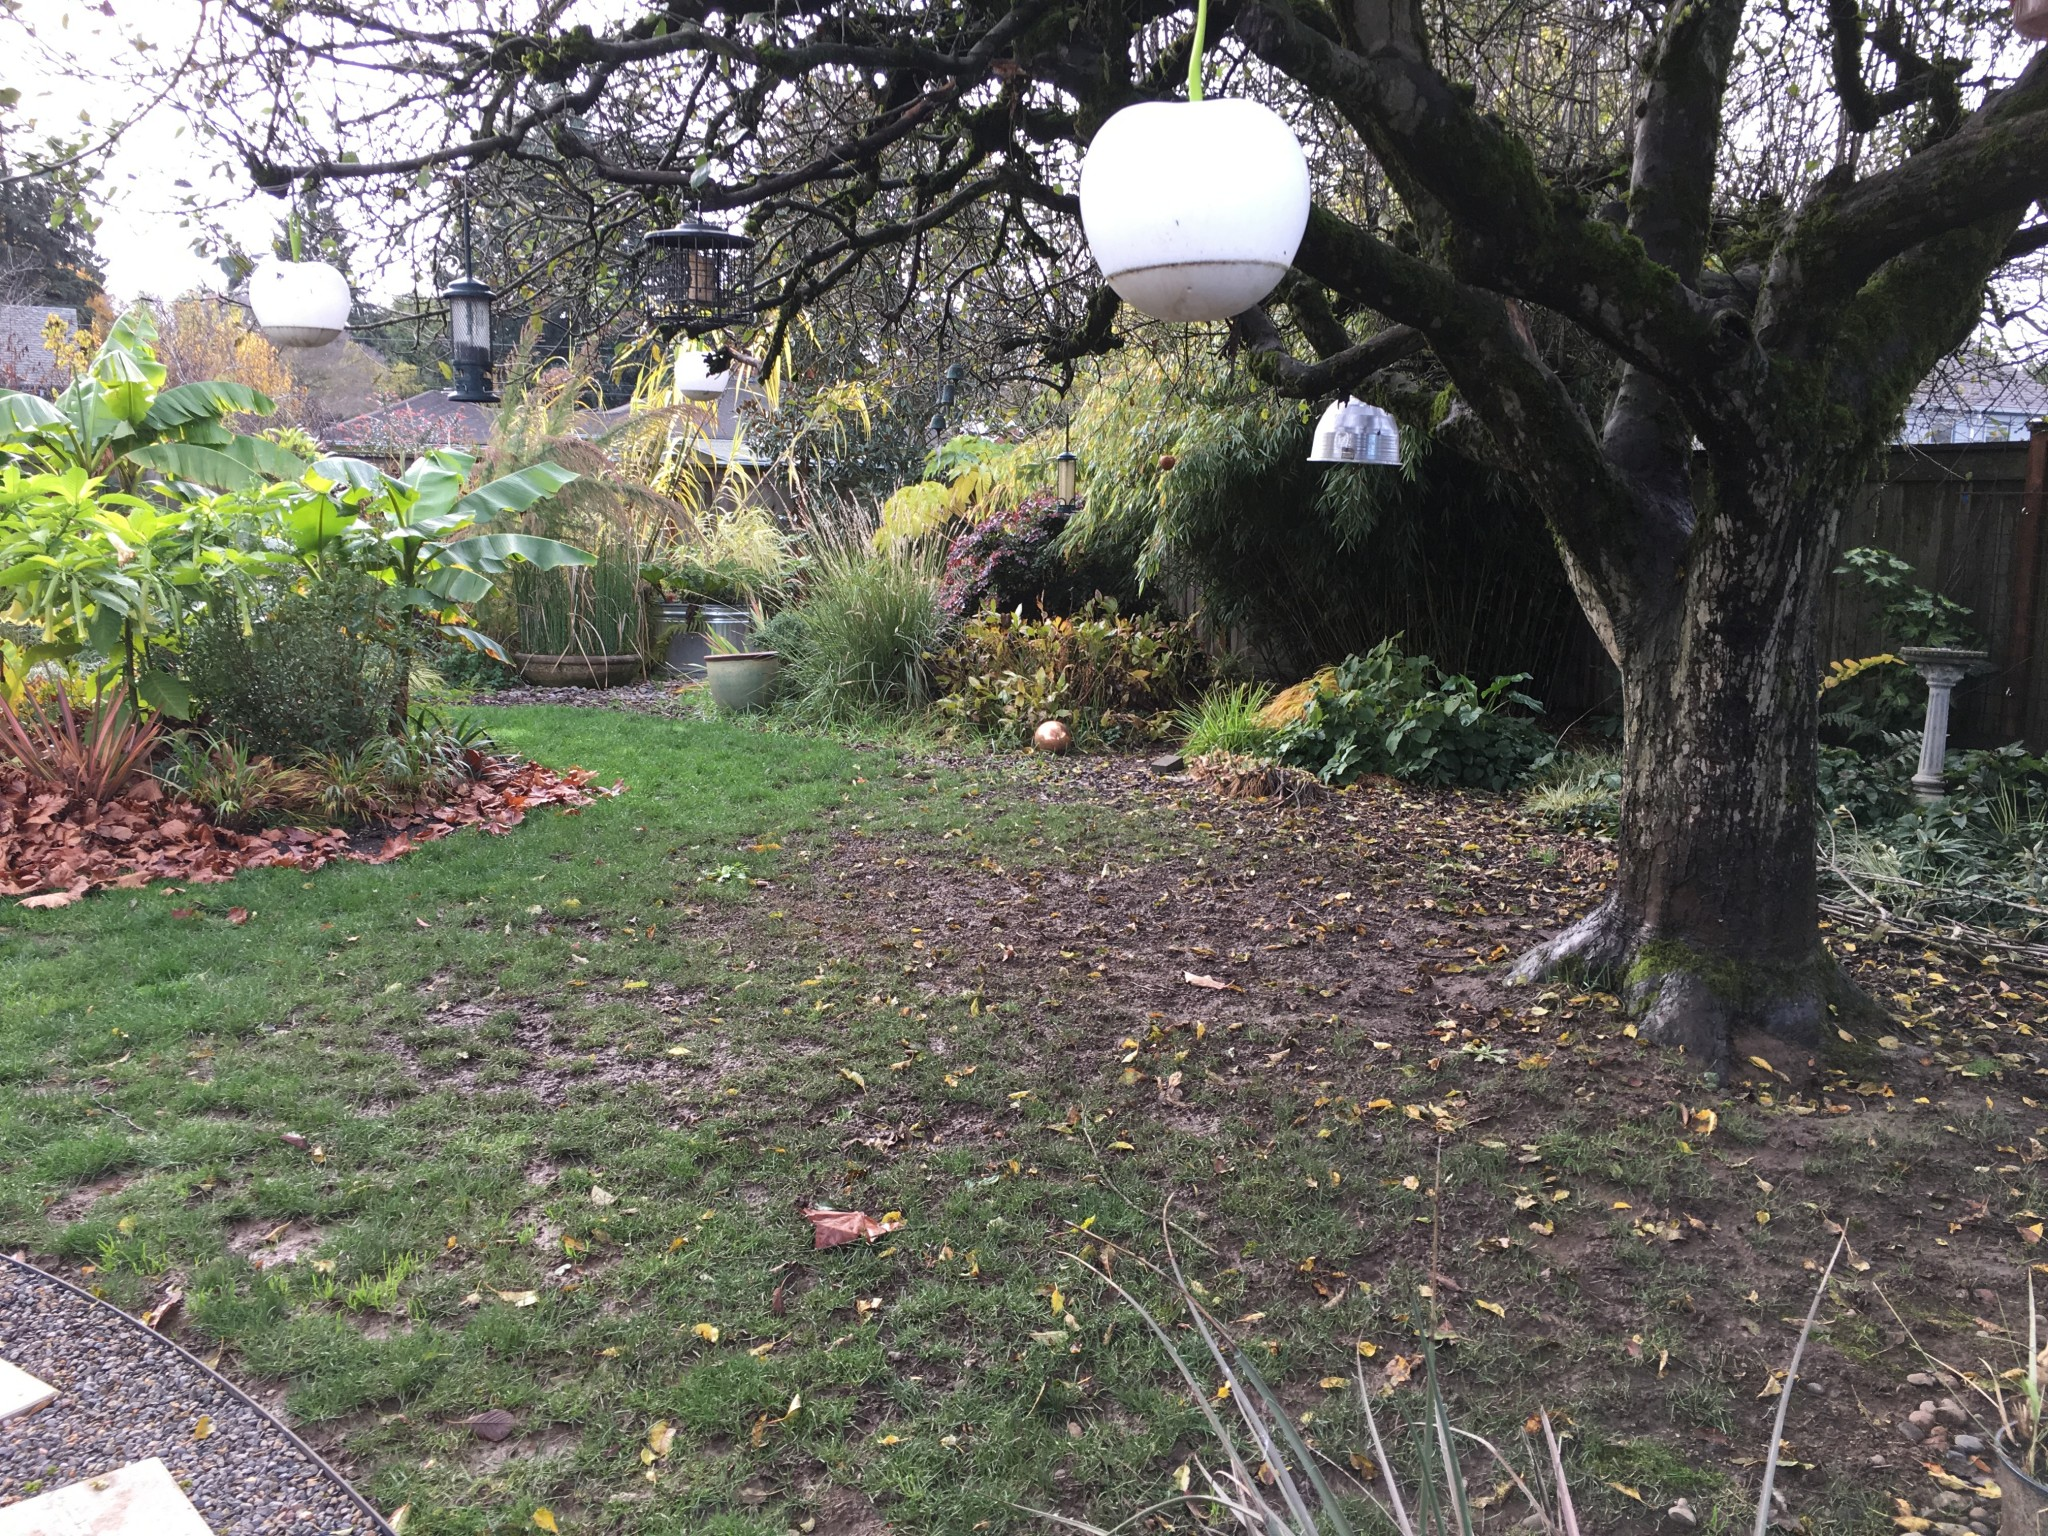 Apple tree with bird feeders and mud below.